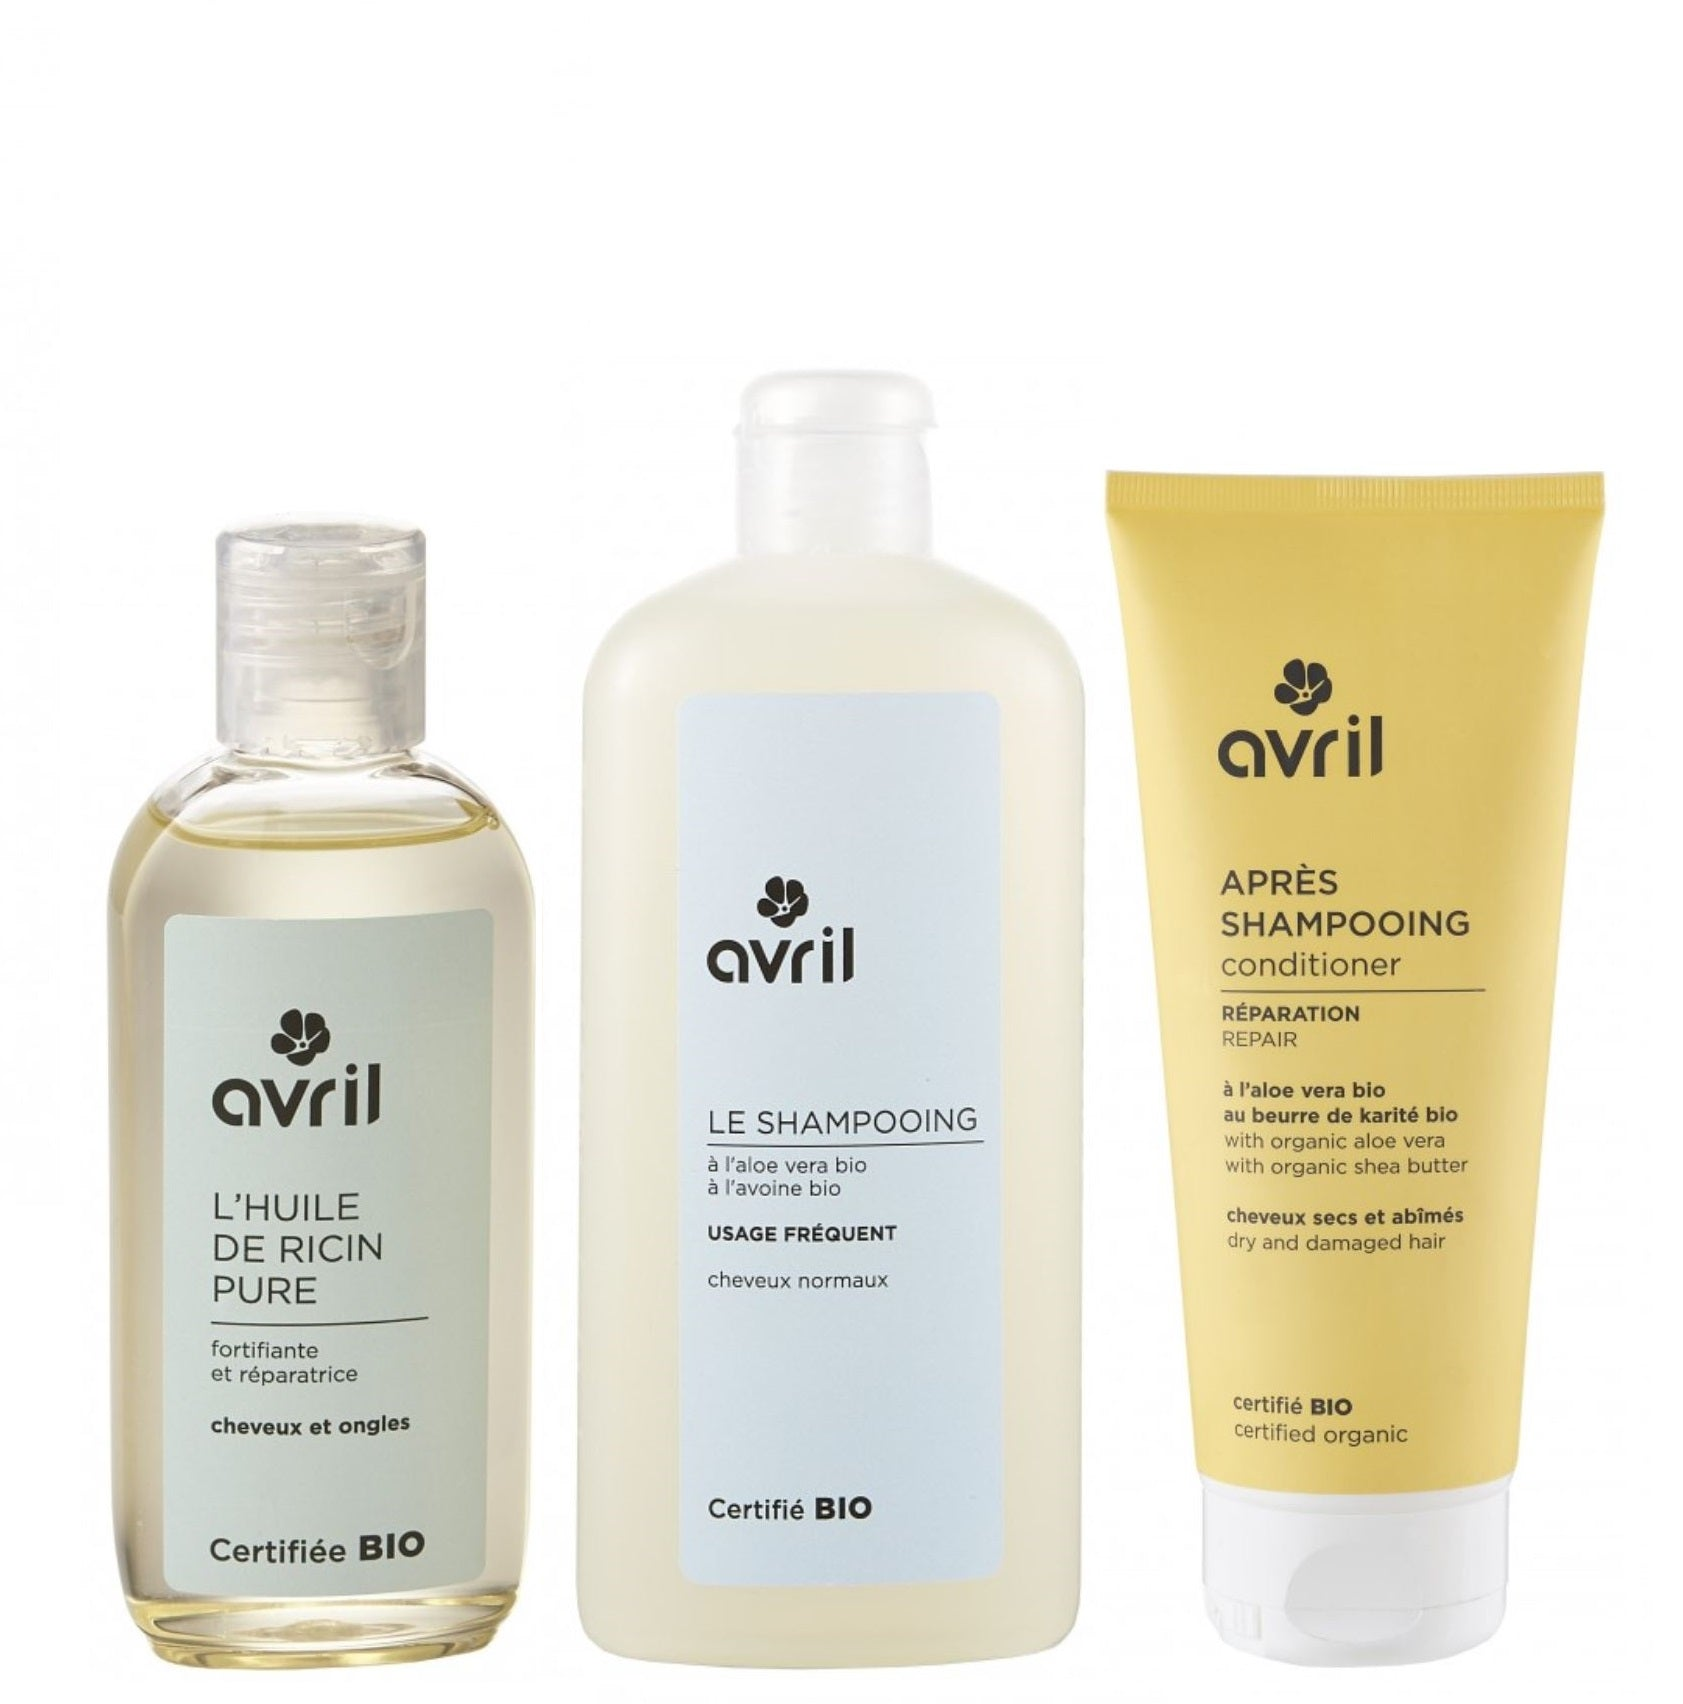 AVRIL HEALTHY HAIR CARE PROMO SET-certified organic by Ecocert